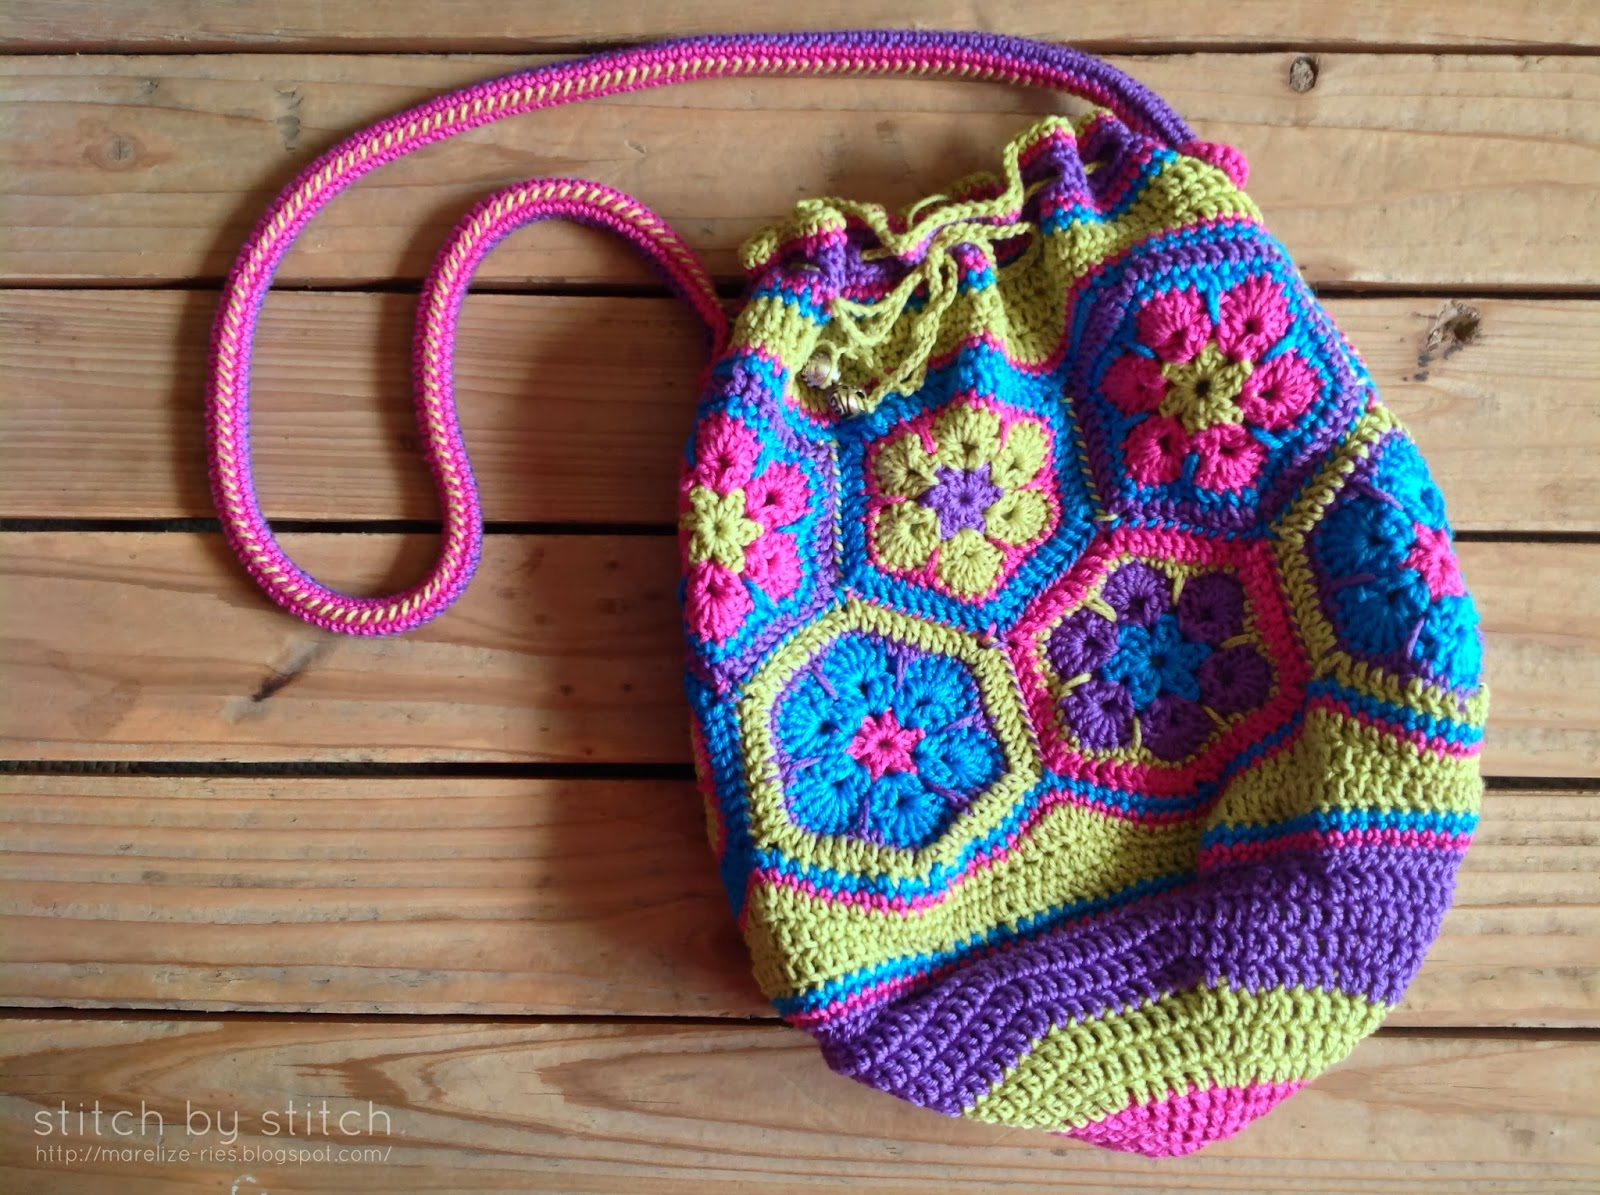 Stitch by Stitch: African Flower Crochet Bag - Lining Tutorial